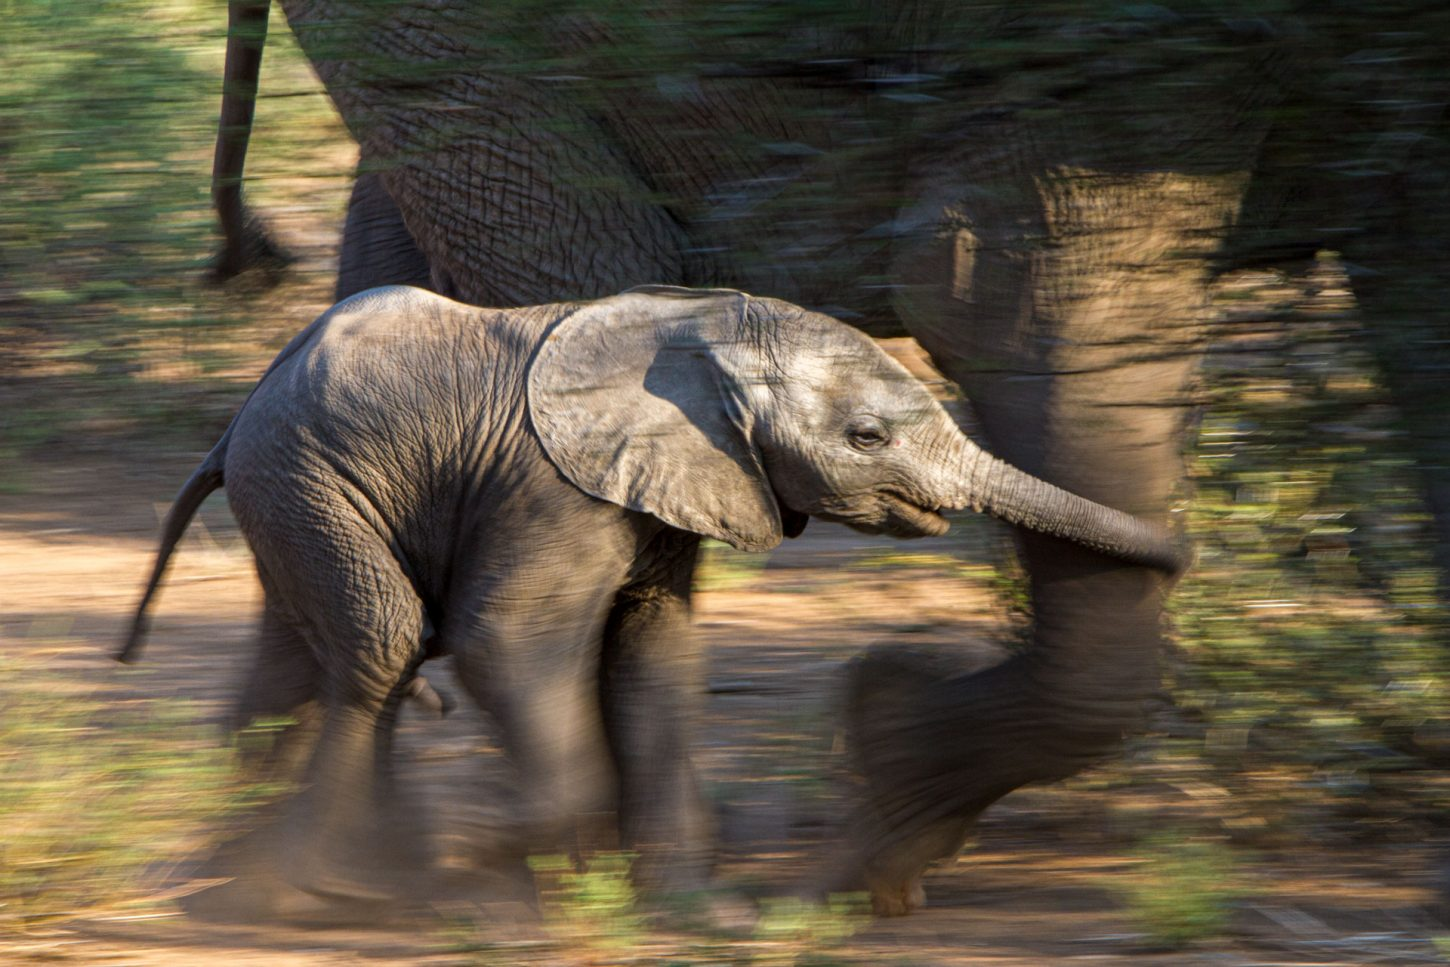 An elephant calf runs to keep up with its mother